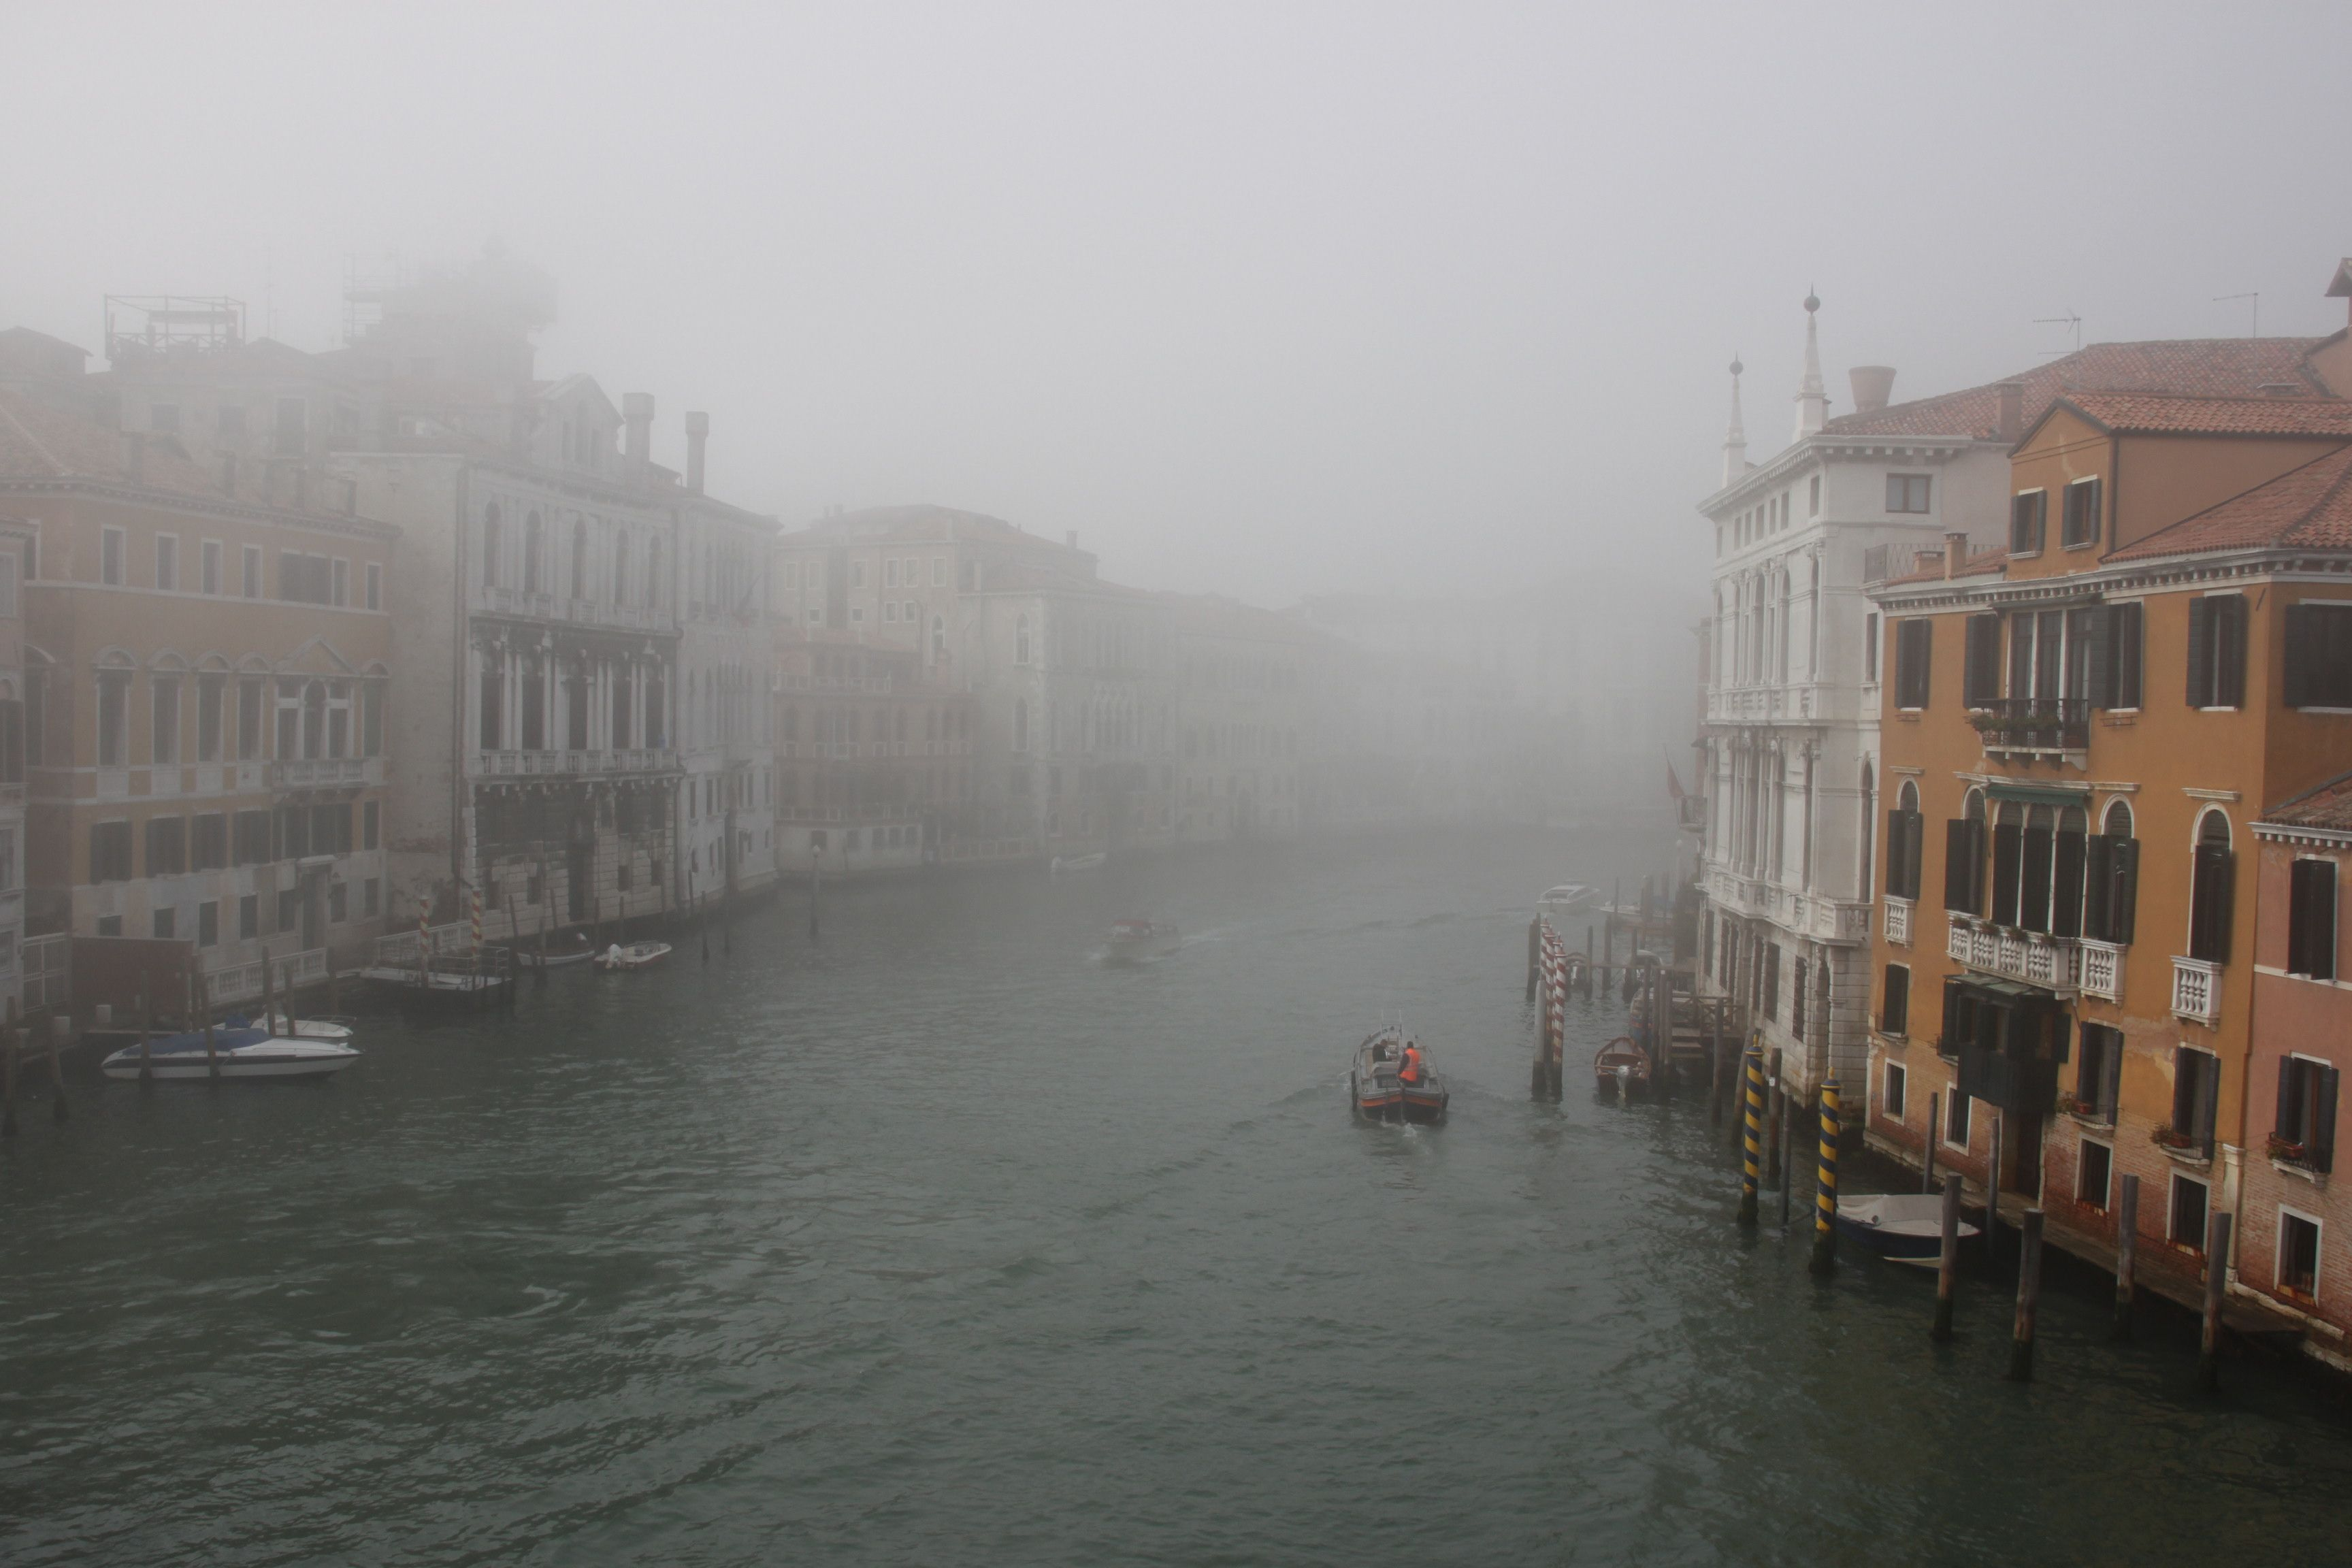 The Grand Canal disappears into the distance